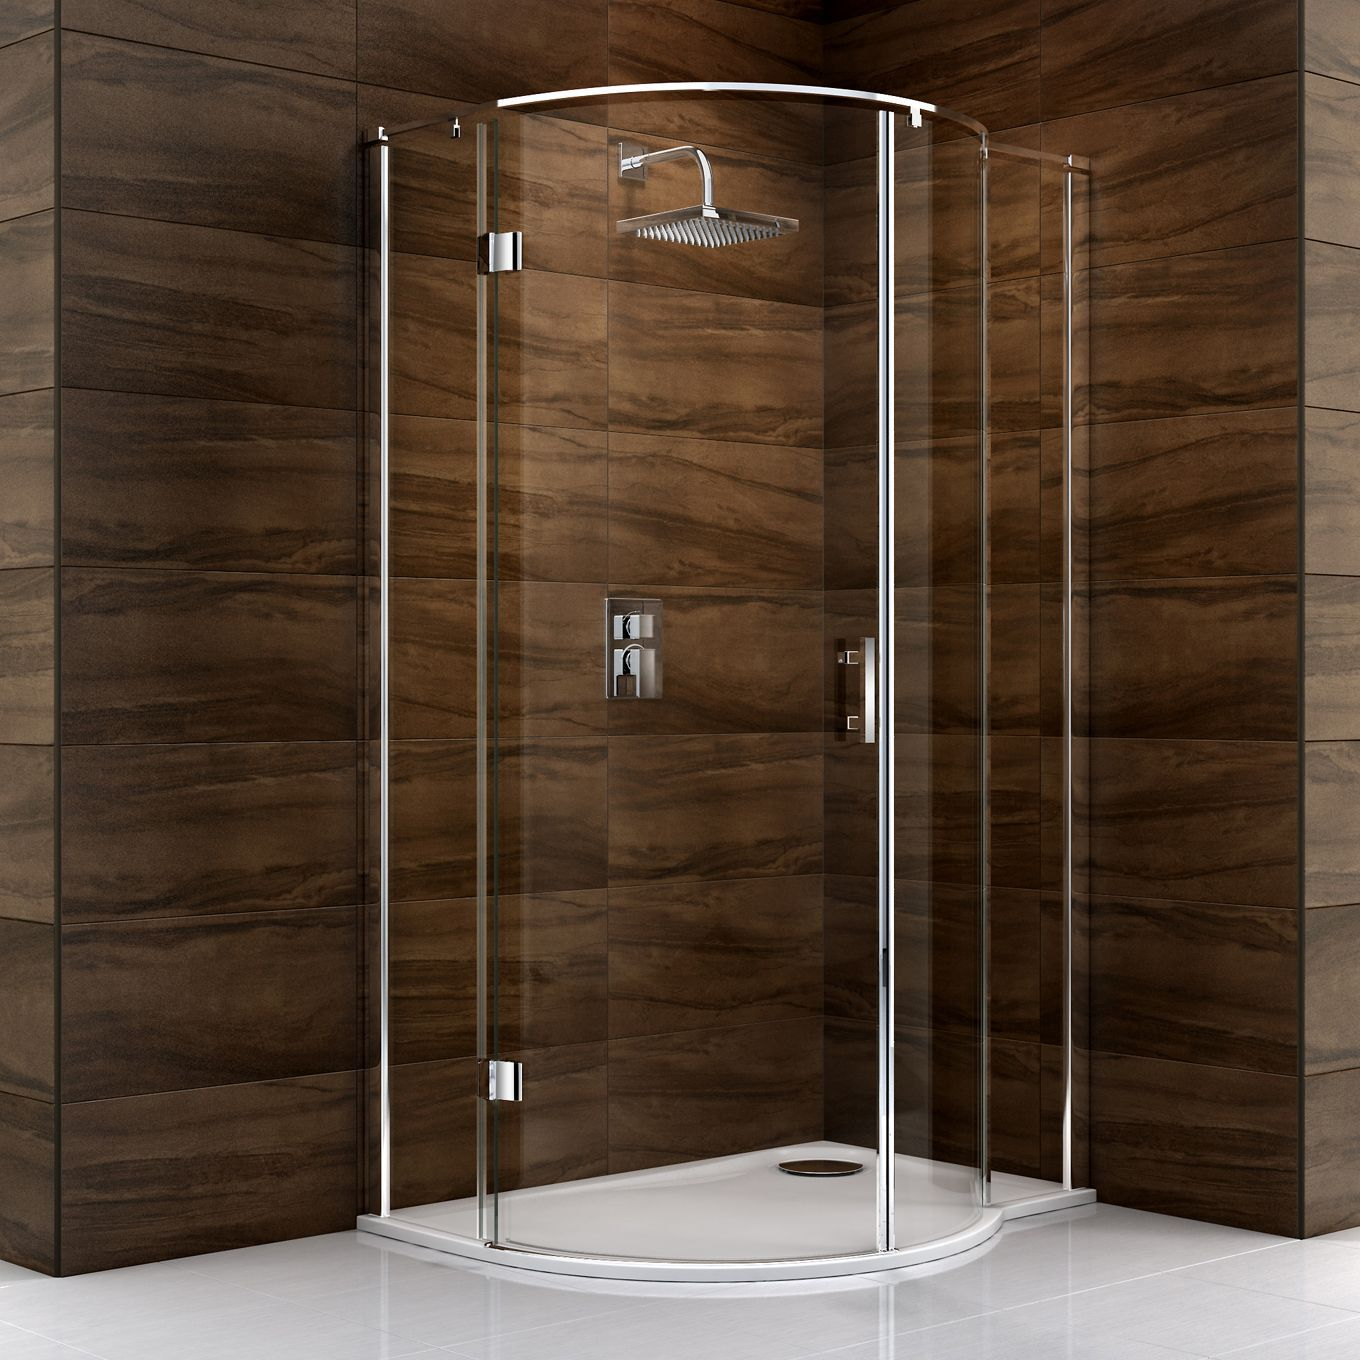 Cooke & Lewis Cascata P shaped Shower enclosure with Hinged door (W ...